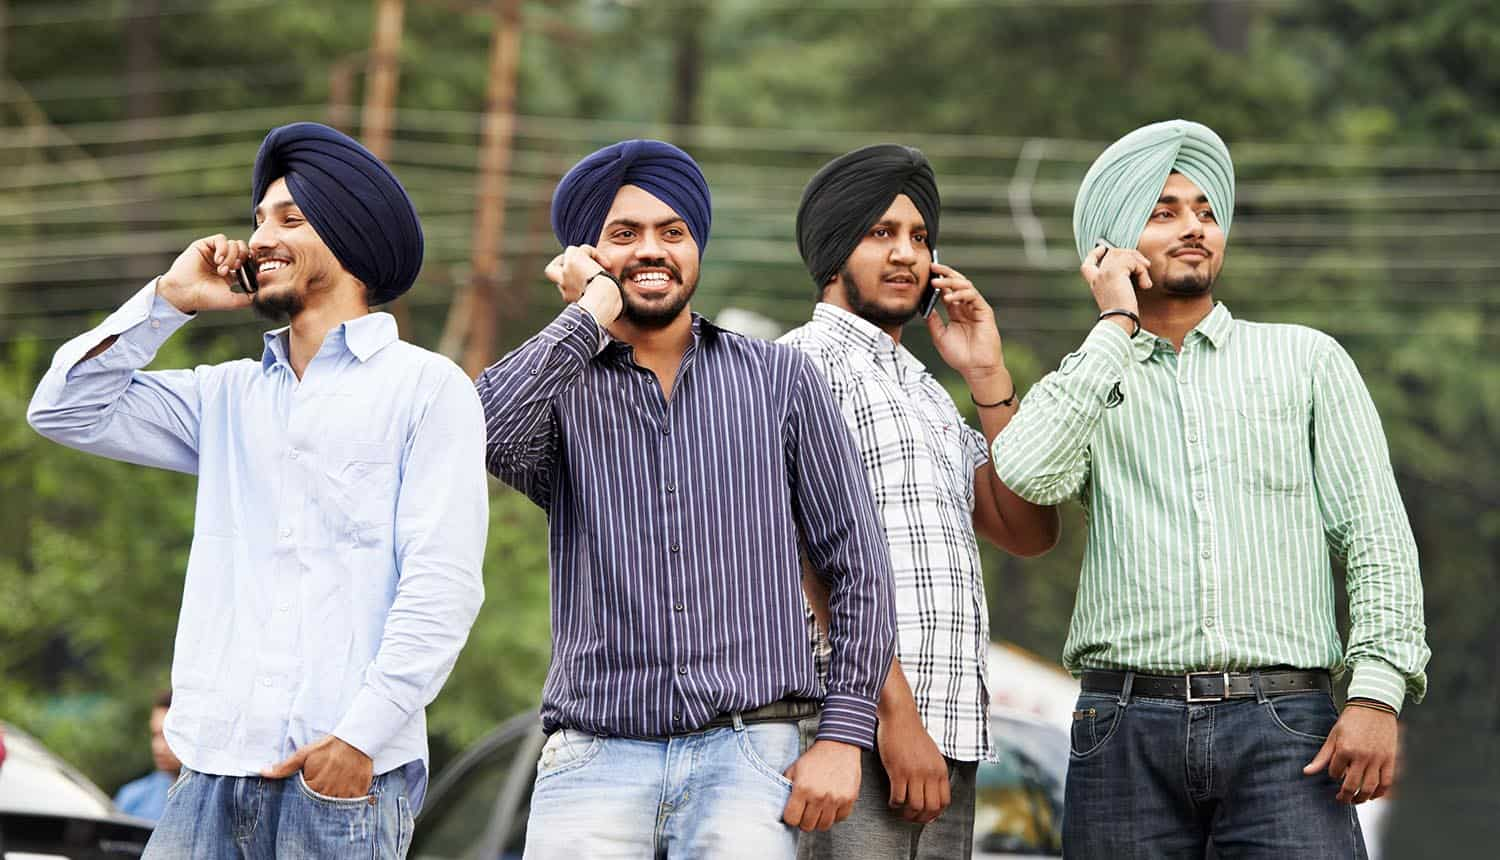 Image of Indians using their mobile phones representing cyber security standards mandated by the Indian government on phone makers